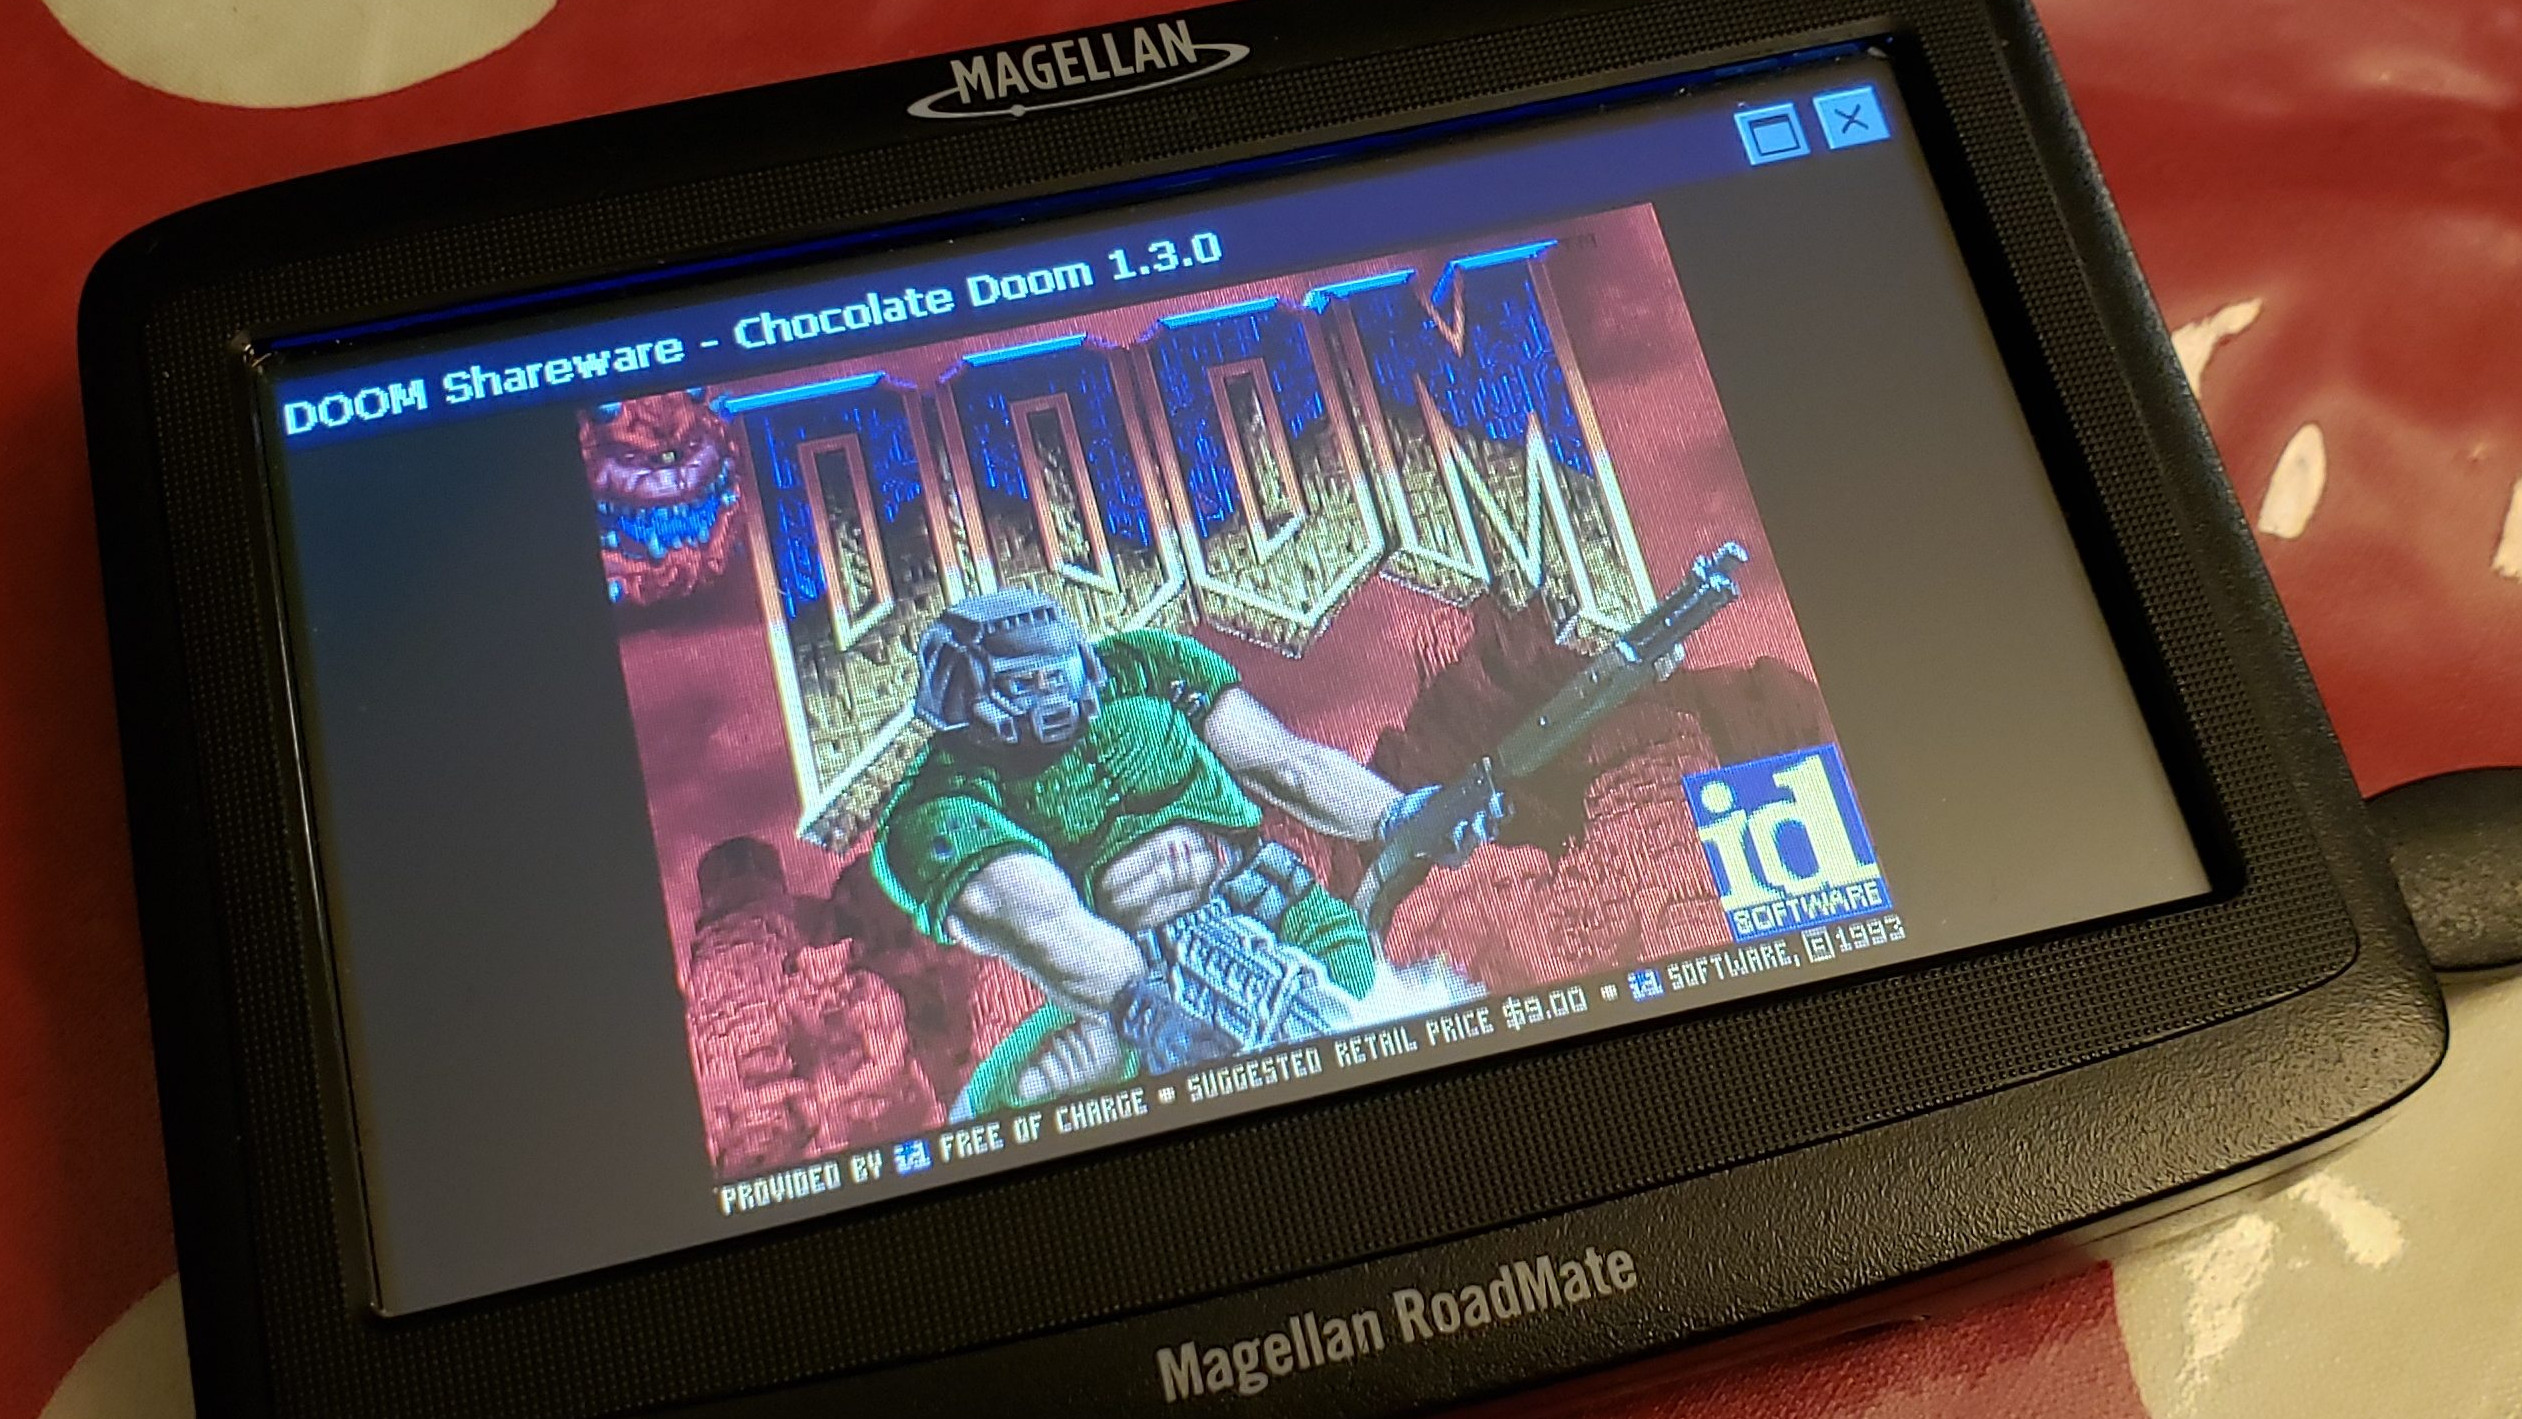 Running Doom On A Doomed GPS | Hackaday